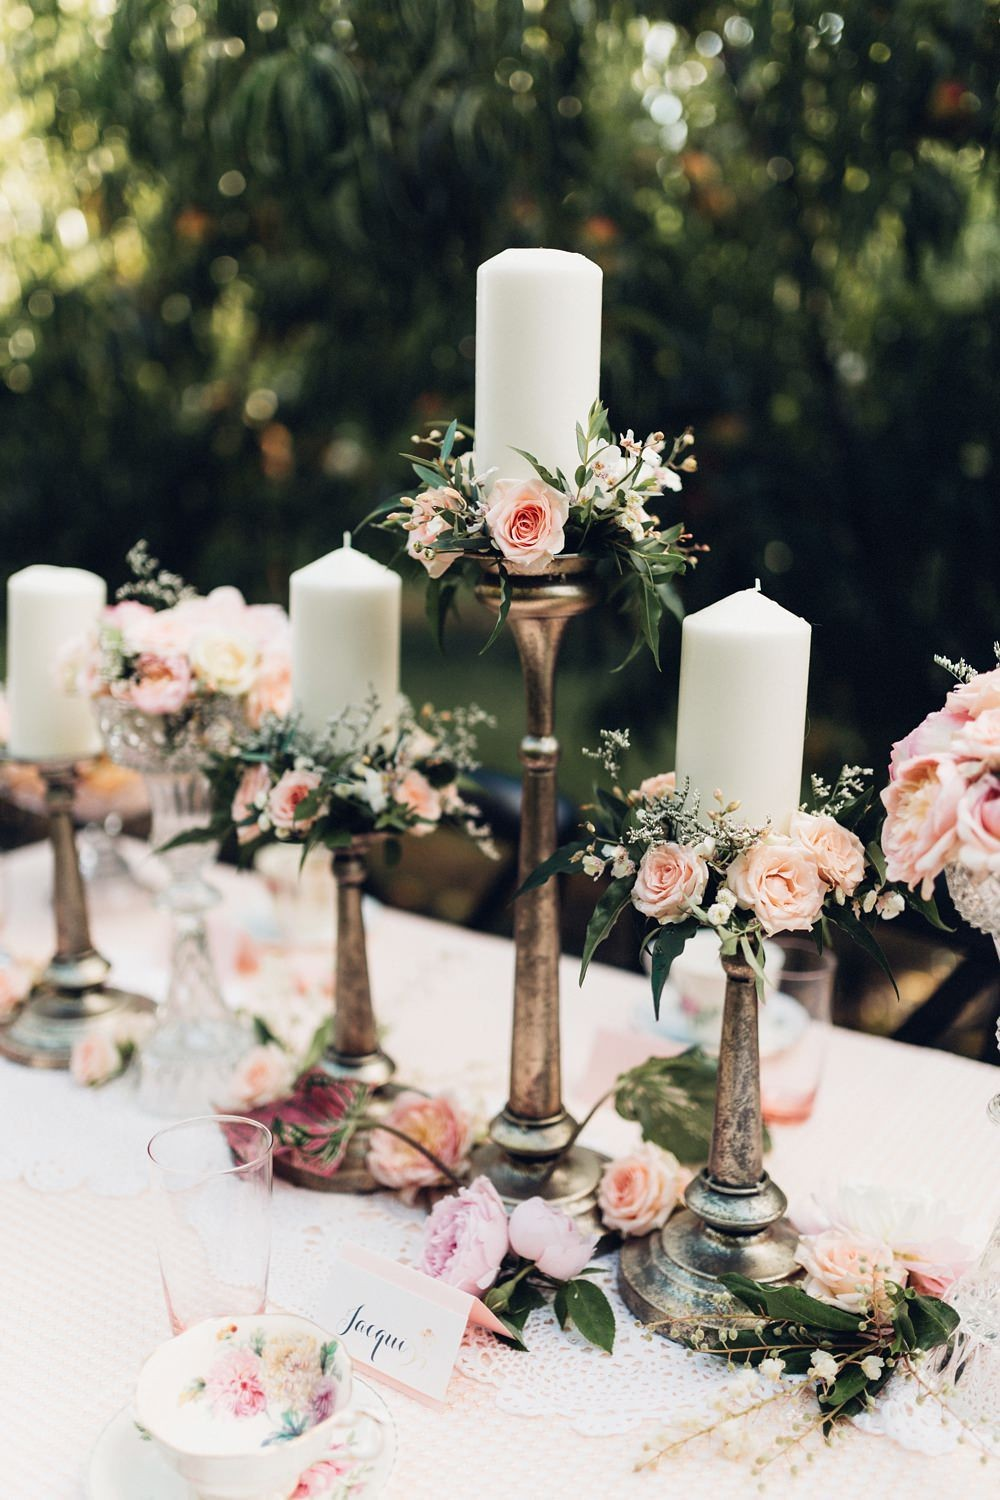 Table Decorations With Candles And Flowers